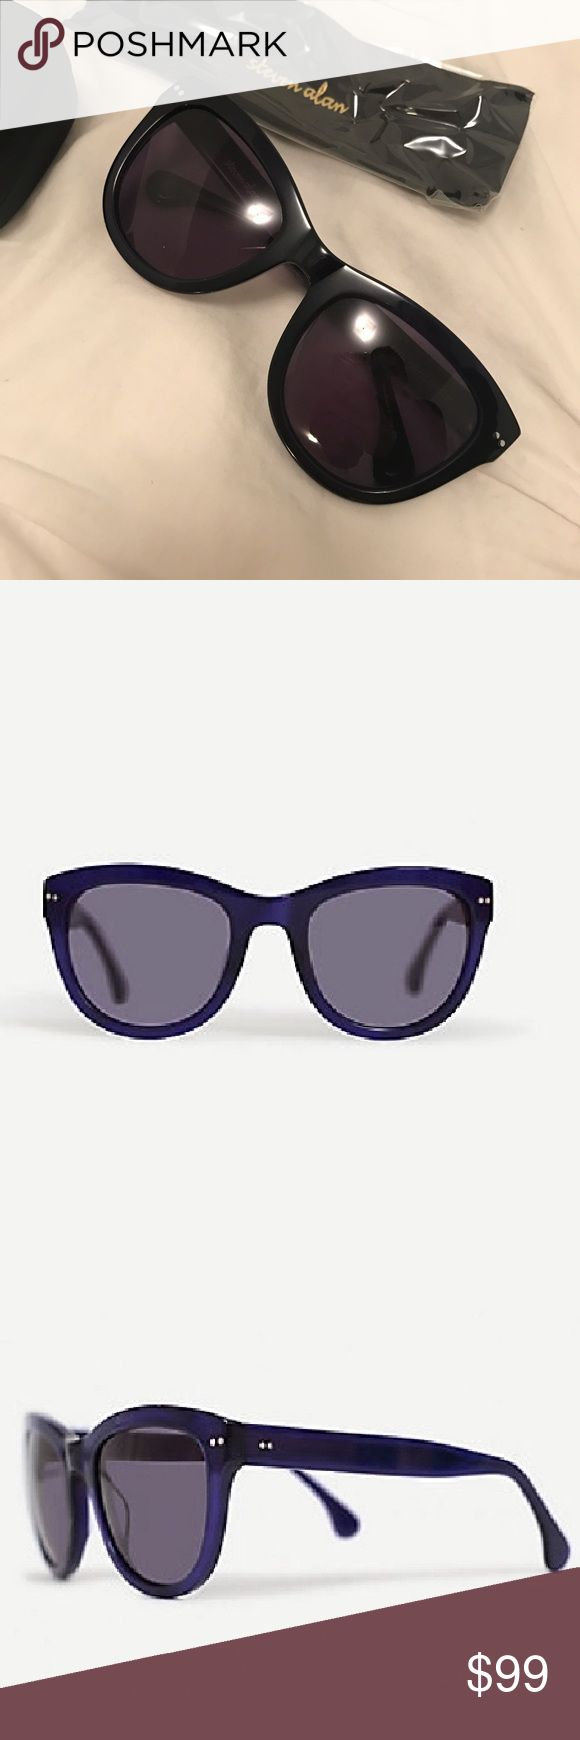 Steven Alan NIB KENT cat eye sunglasses purple Brand new in the box sunglasses by Steven Alan. The style name is Kent and the frames are more black than purple. All items shown included.   The Kent is a soft cat-eye frame from Steven Alan Optical best suited to round or oblong faces.  Crafted from purple crystal acetate with pin rivet rose gold hinges, and UVA/UVB protective custom dyed charcoal lenses.   • carrying case and signature print microfiber cloth  • measures: 53-22-135  • made…